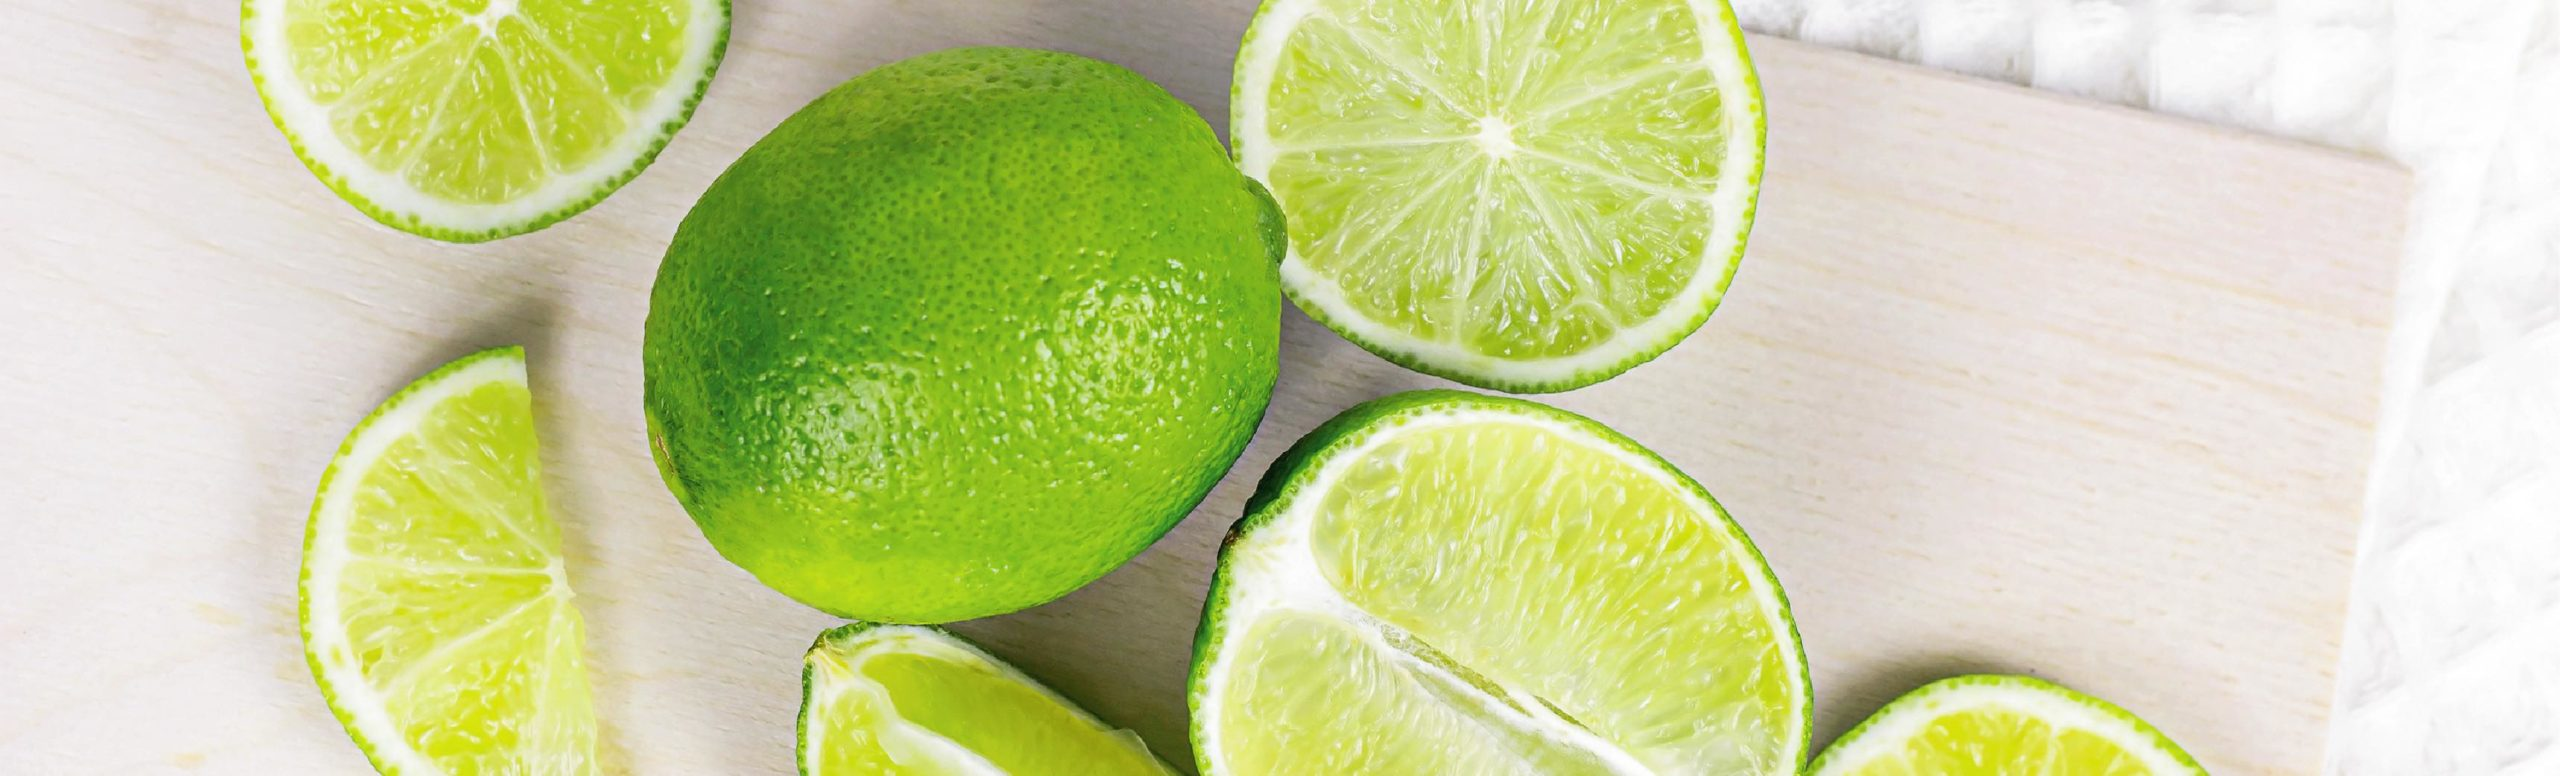 Perky, Powerful Lime, Your New Partner in Grime (fighting!)